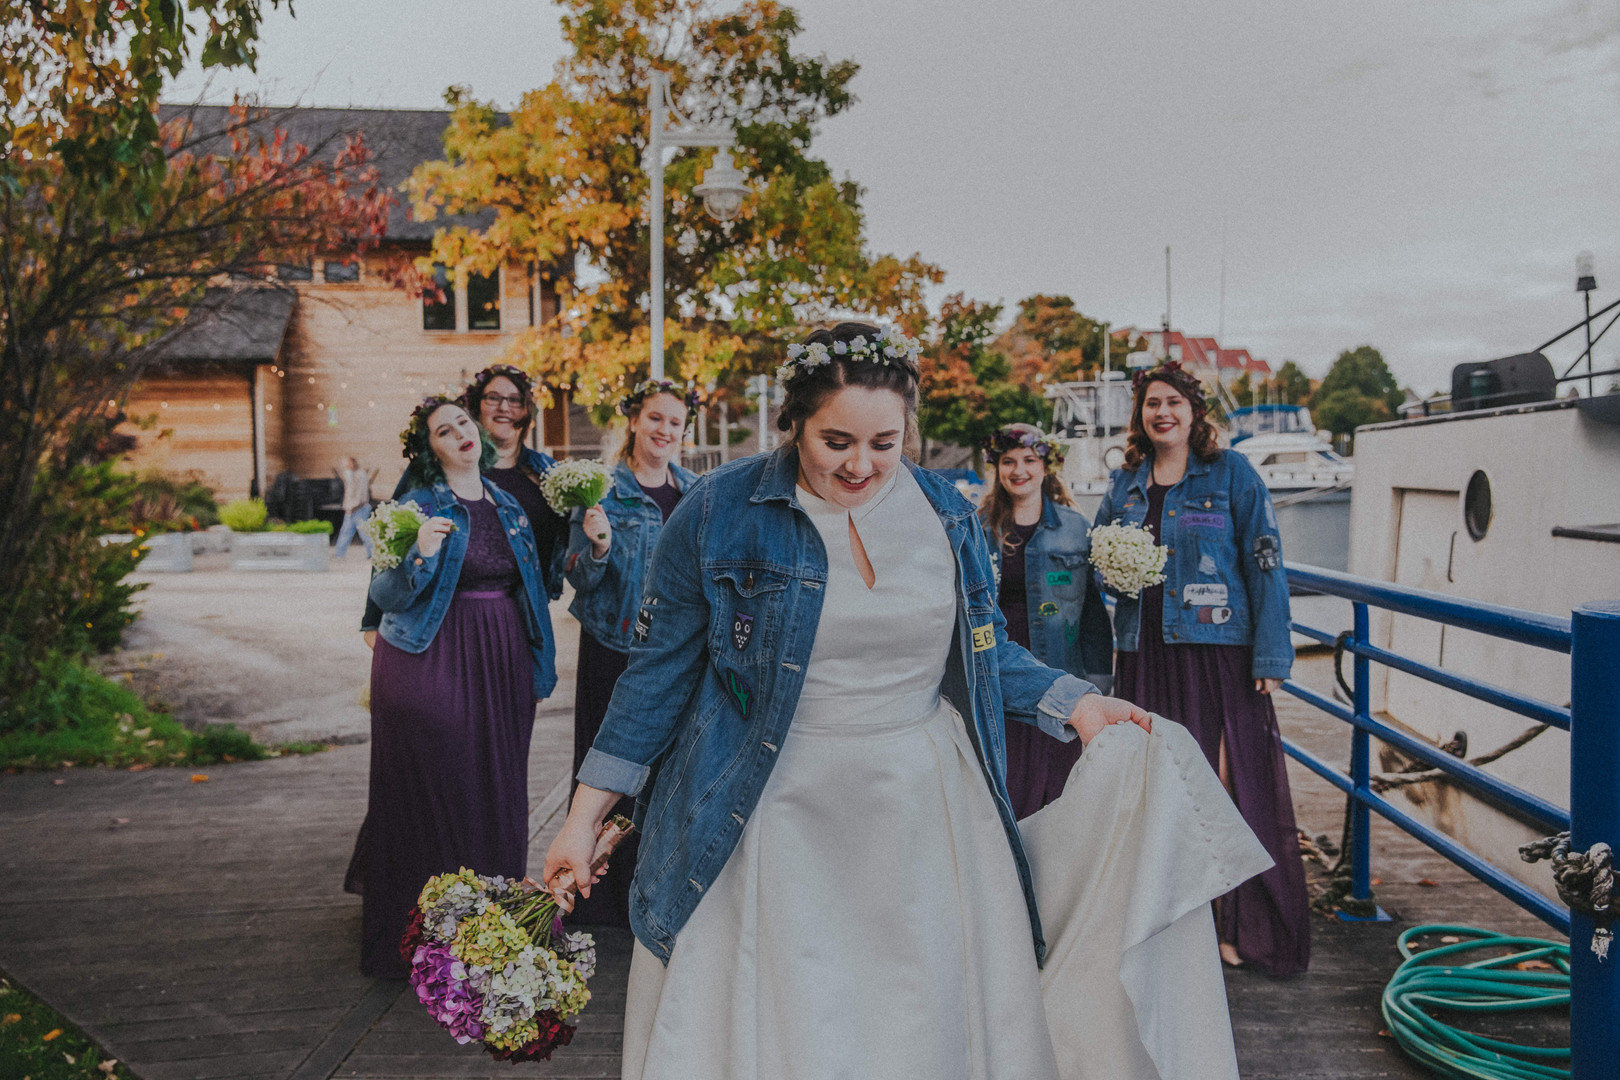 A wedding party laughs together as a bride walks towards the camera on the docks of the Sheboygan River